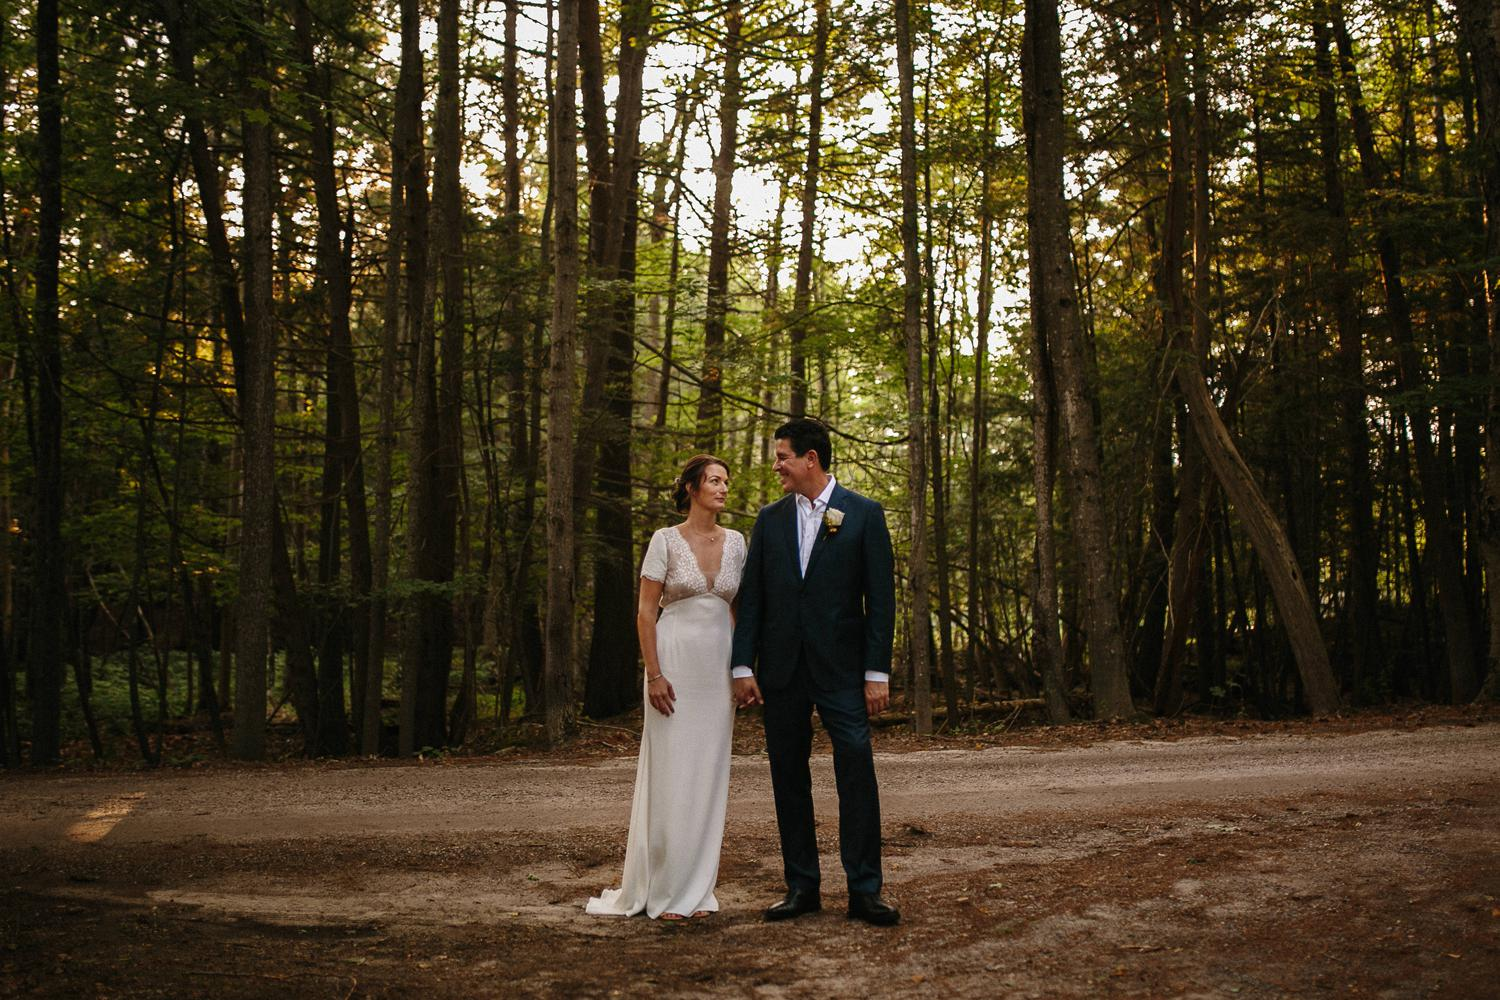 otty lake cottage wedding perth ontario-139.jpg